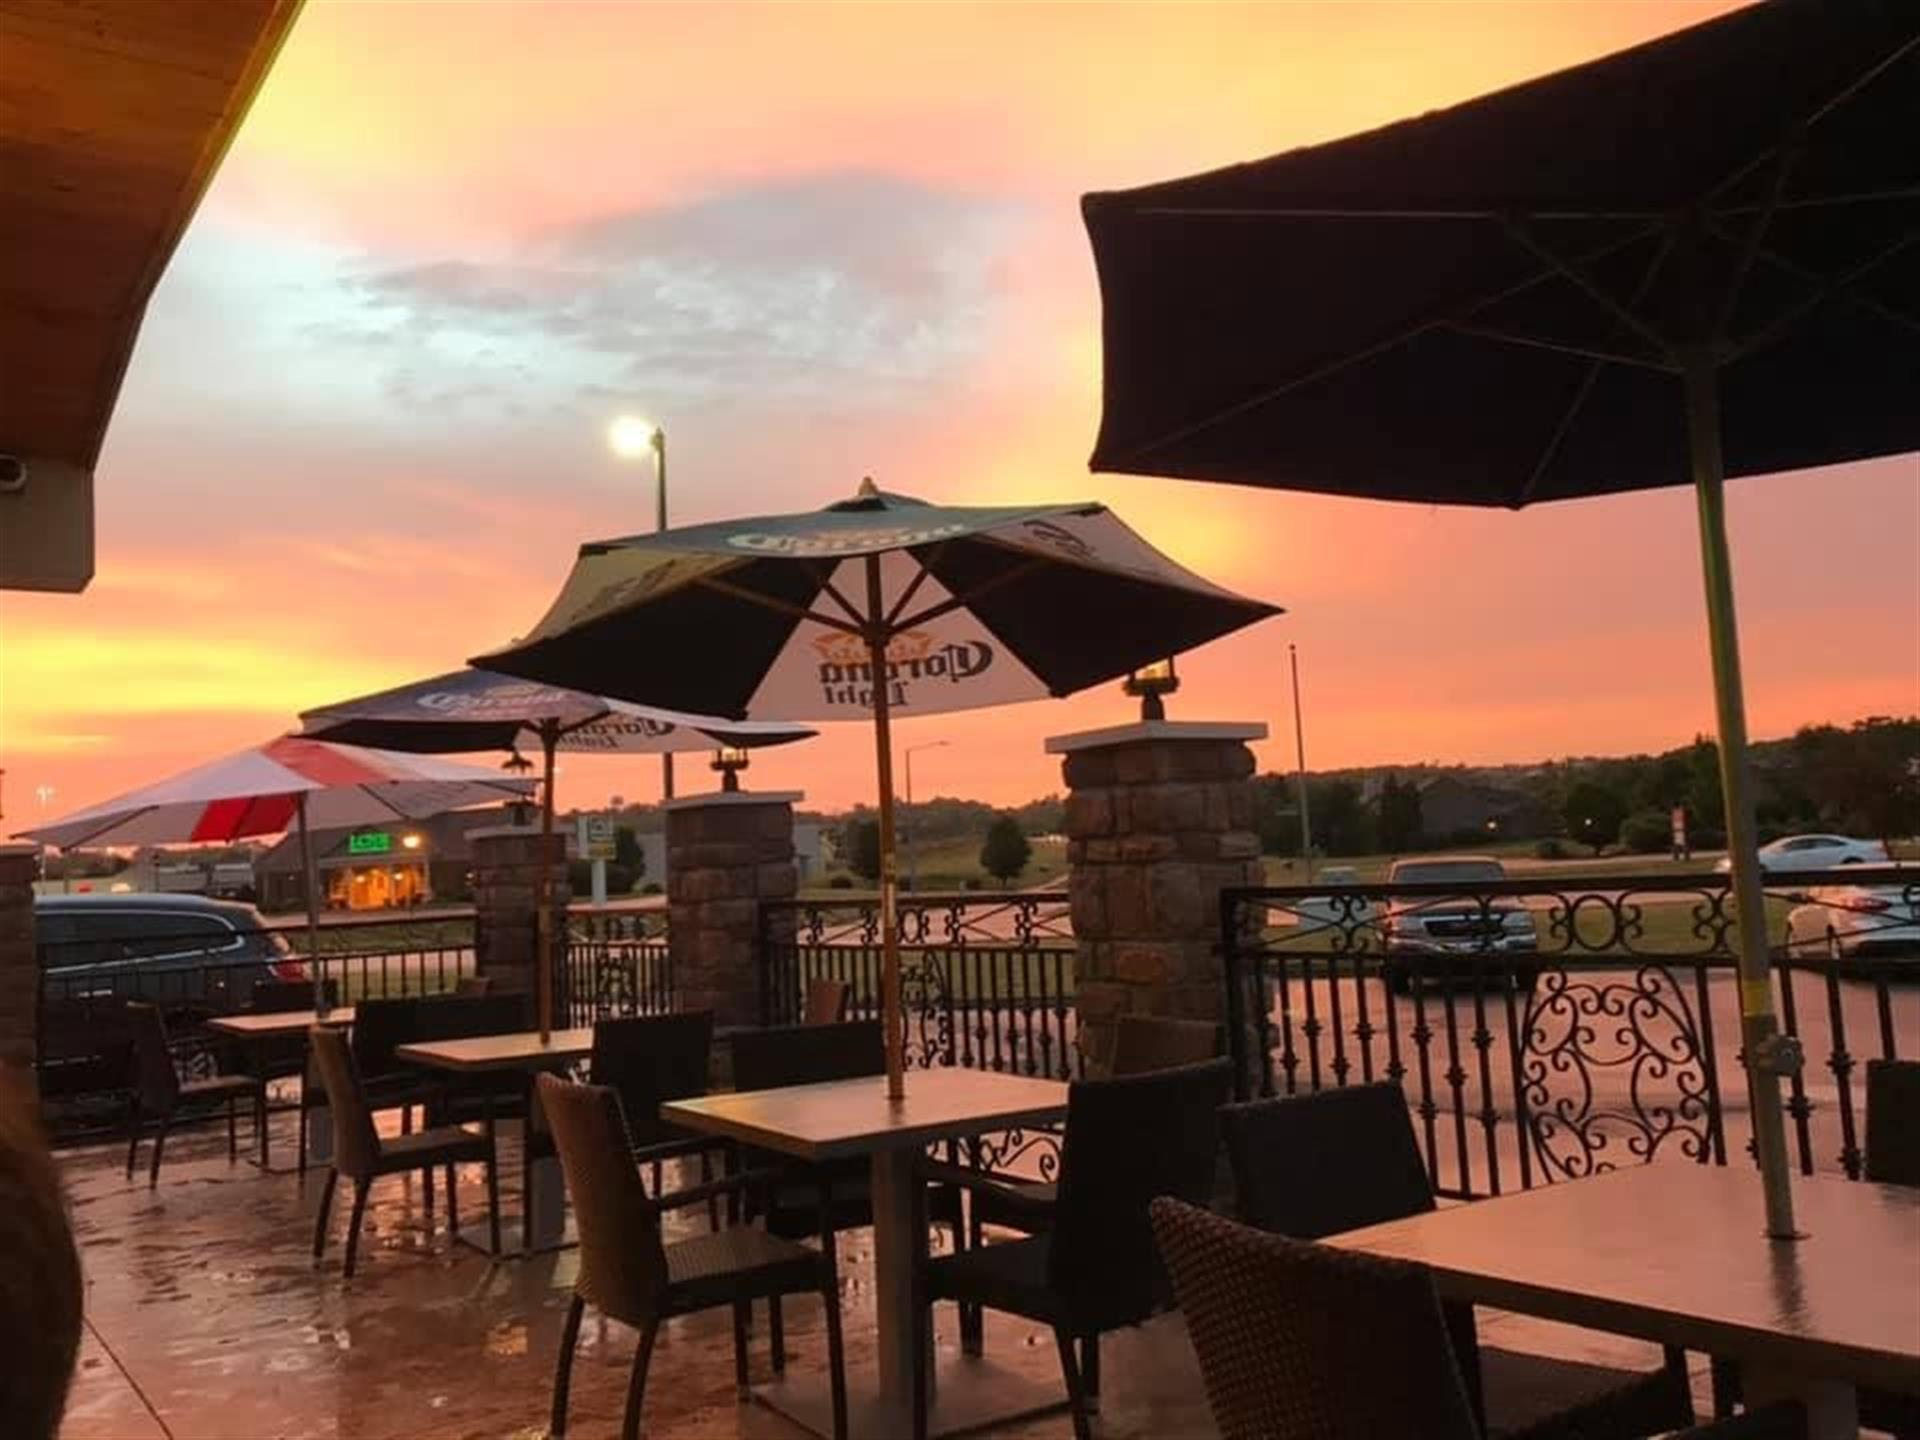 sunset on the outside patio of the restaurant